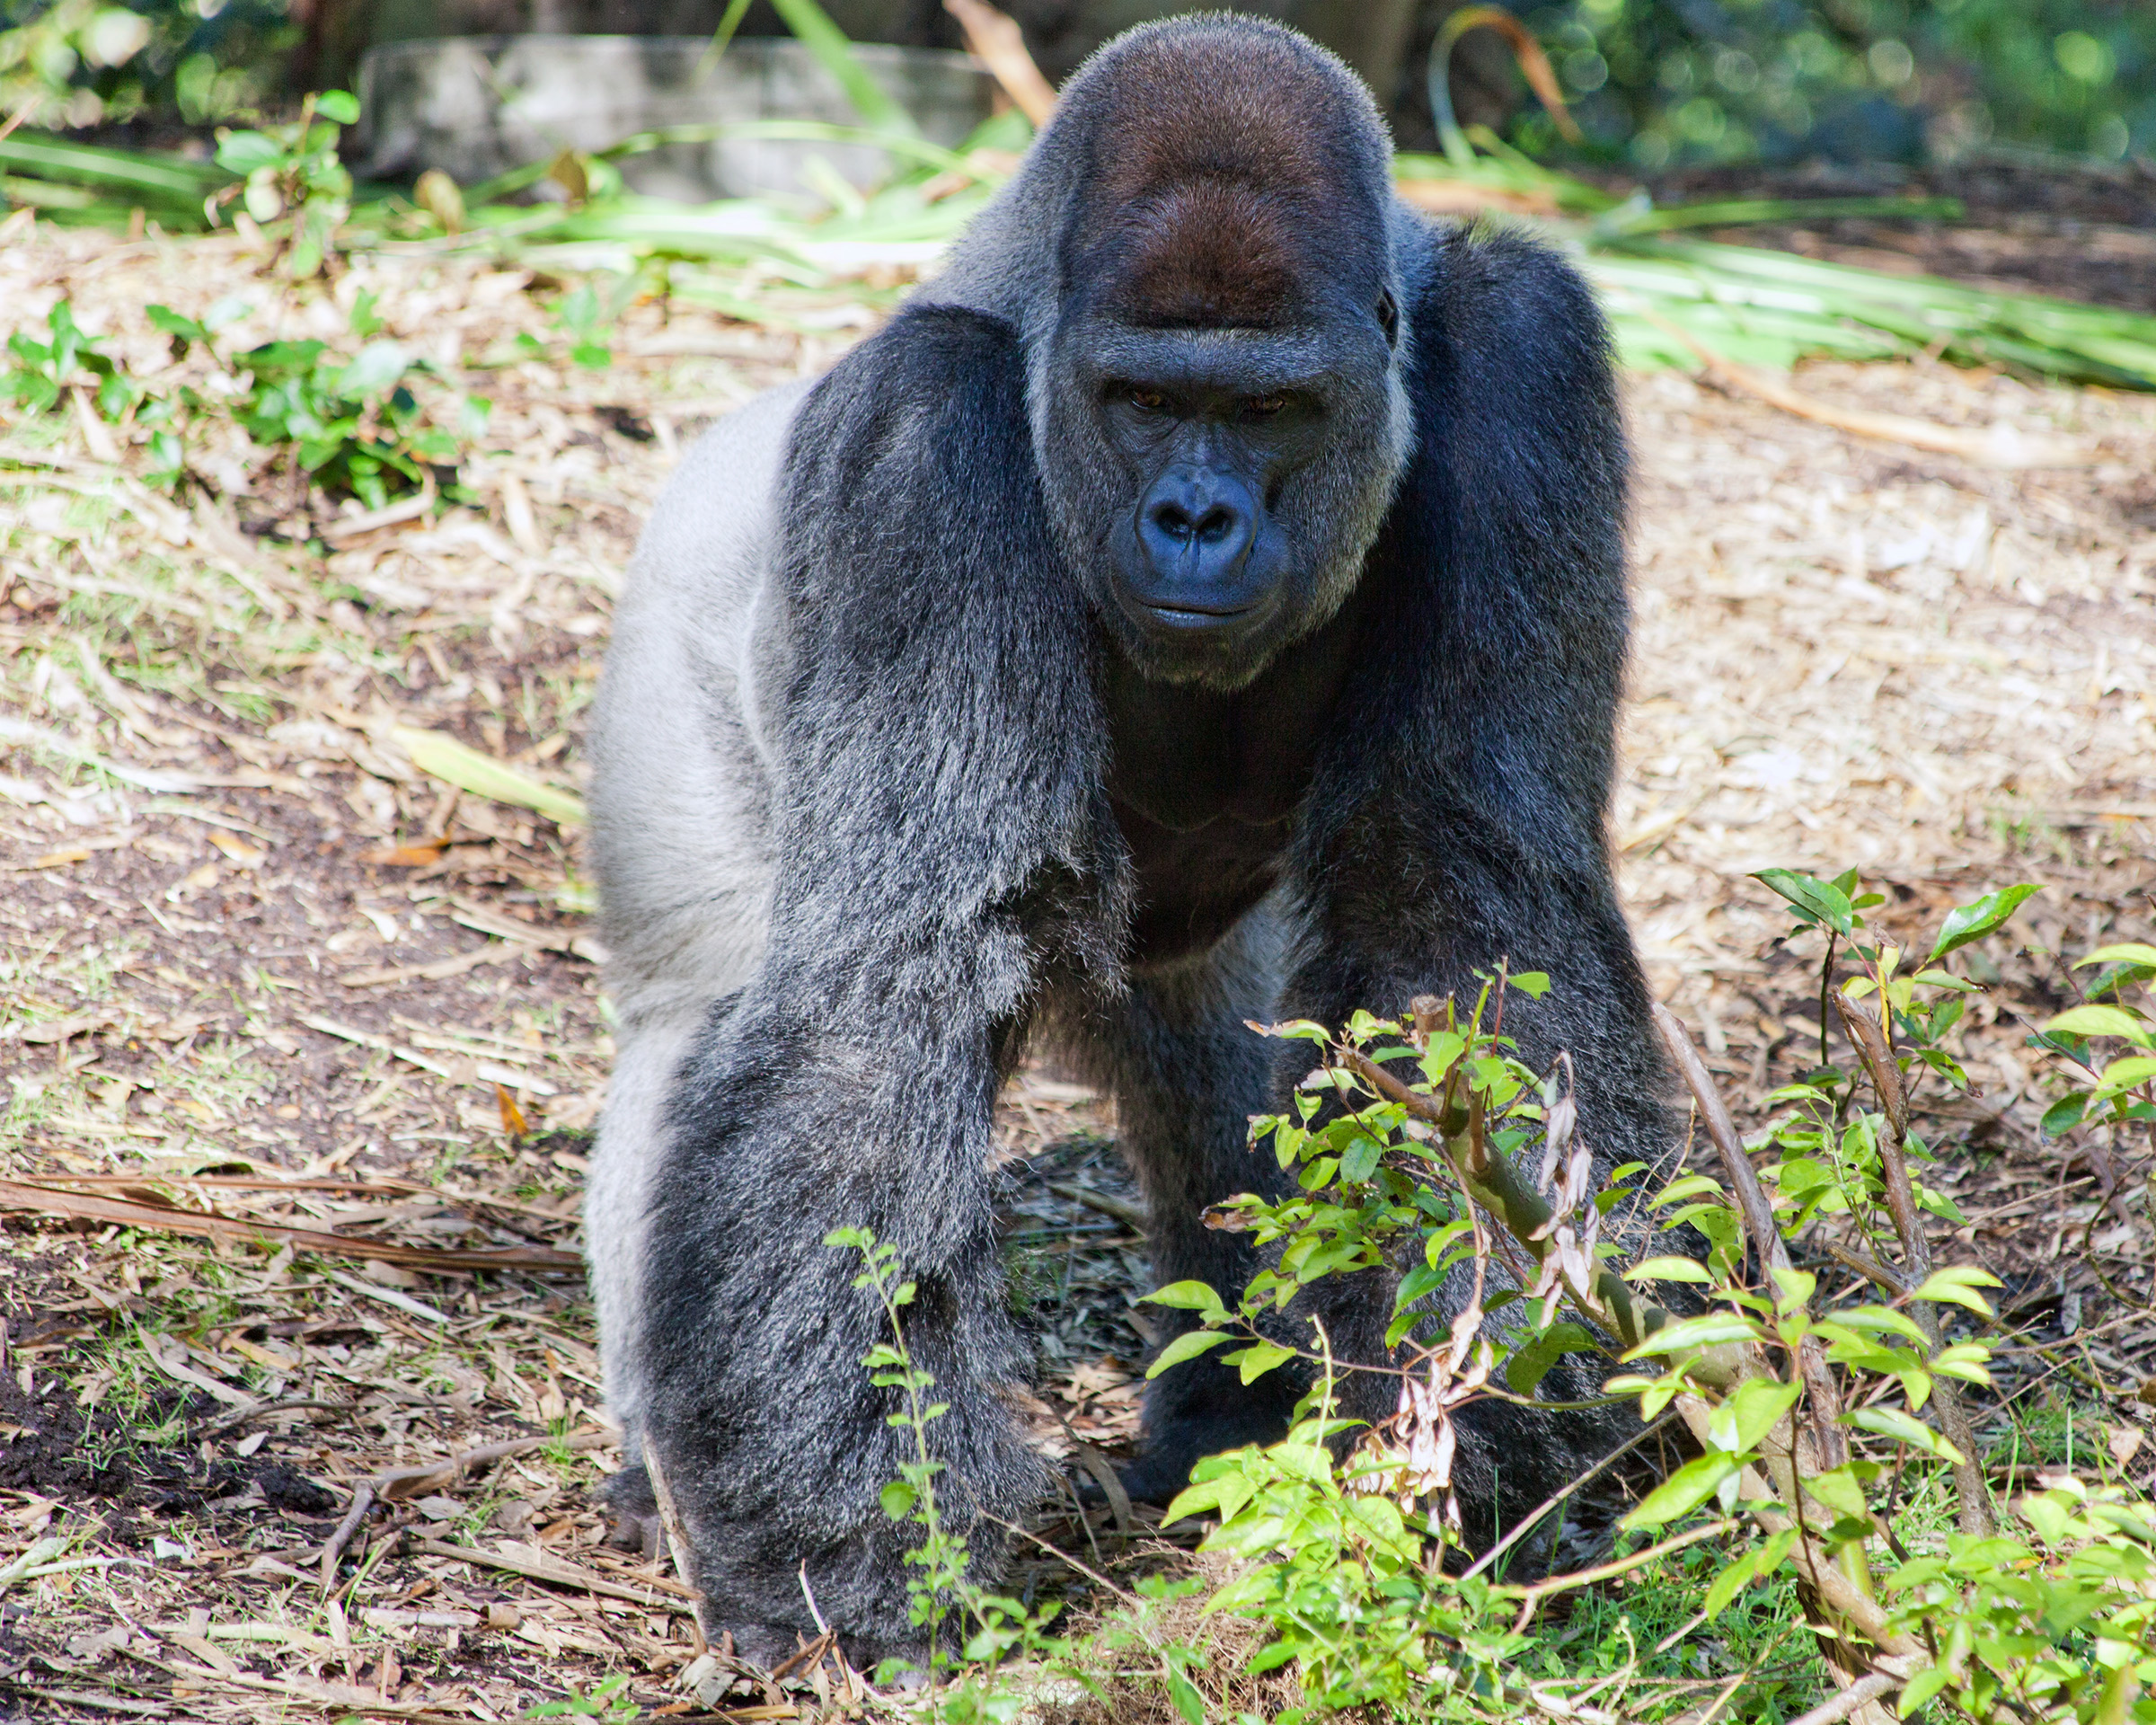 Gorilla, Africa, Life, Huge, Intelligence, HQ Photo